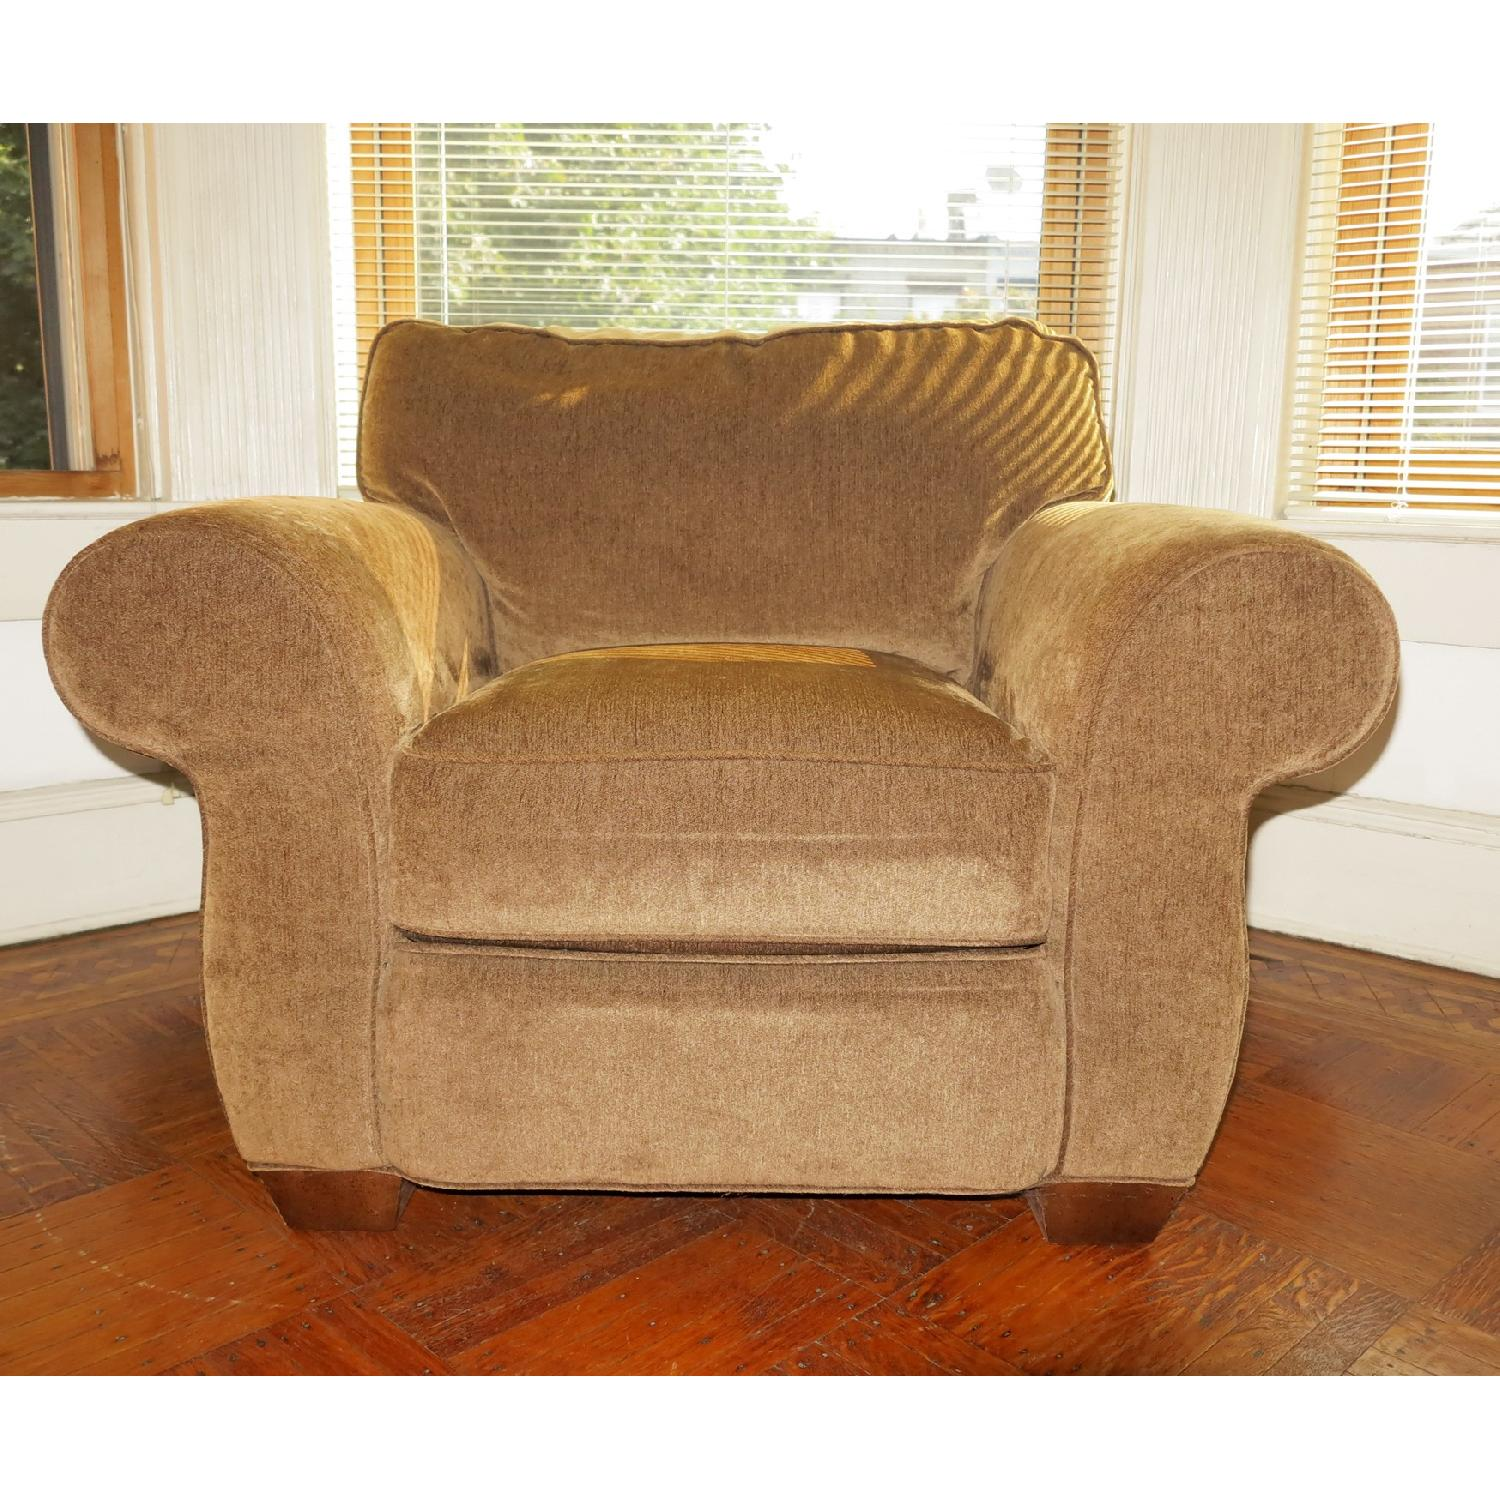 Lee Industries Handcrafted Armchair & Ottoman - image-2